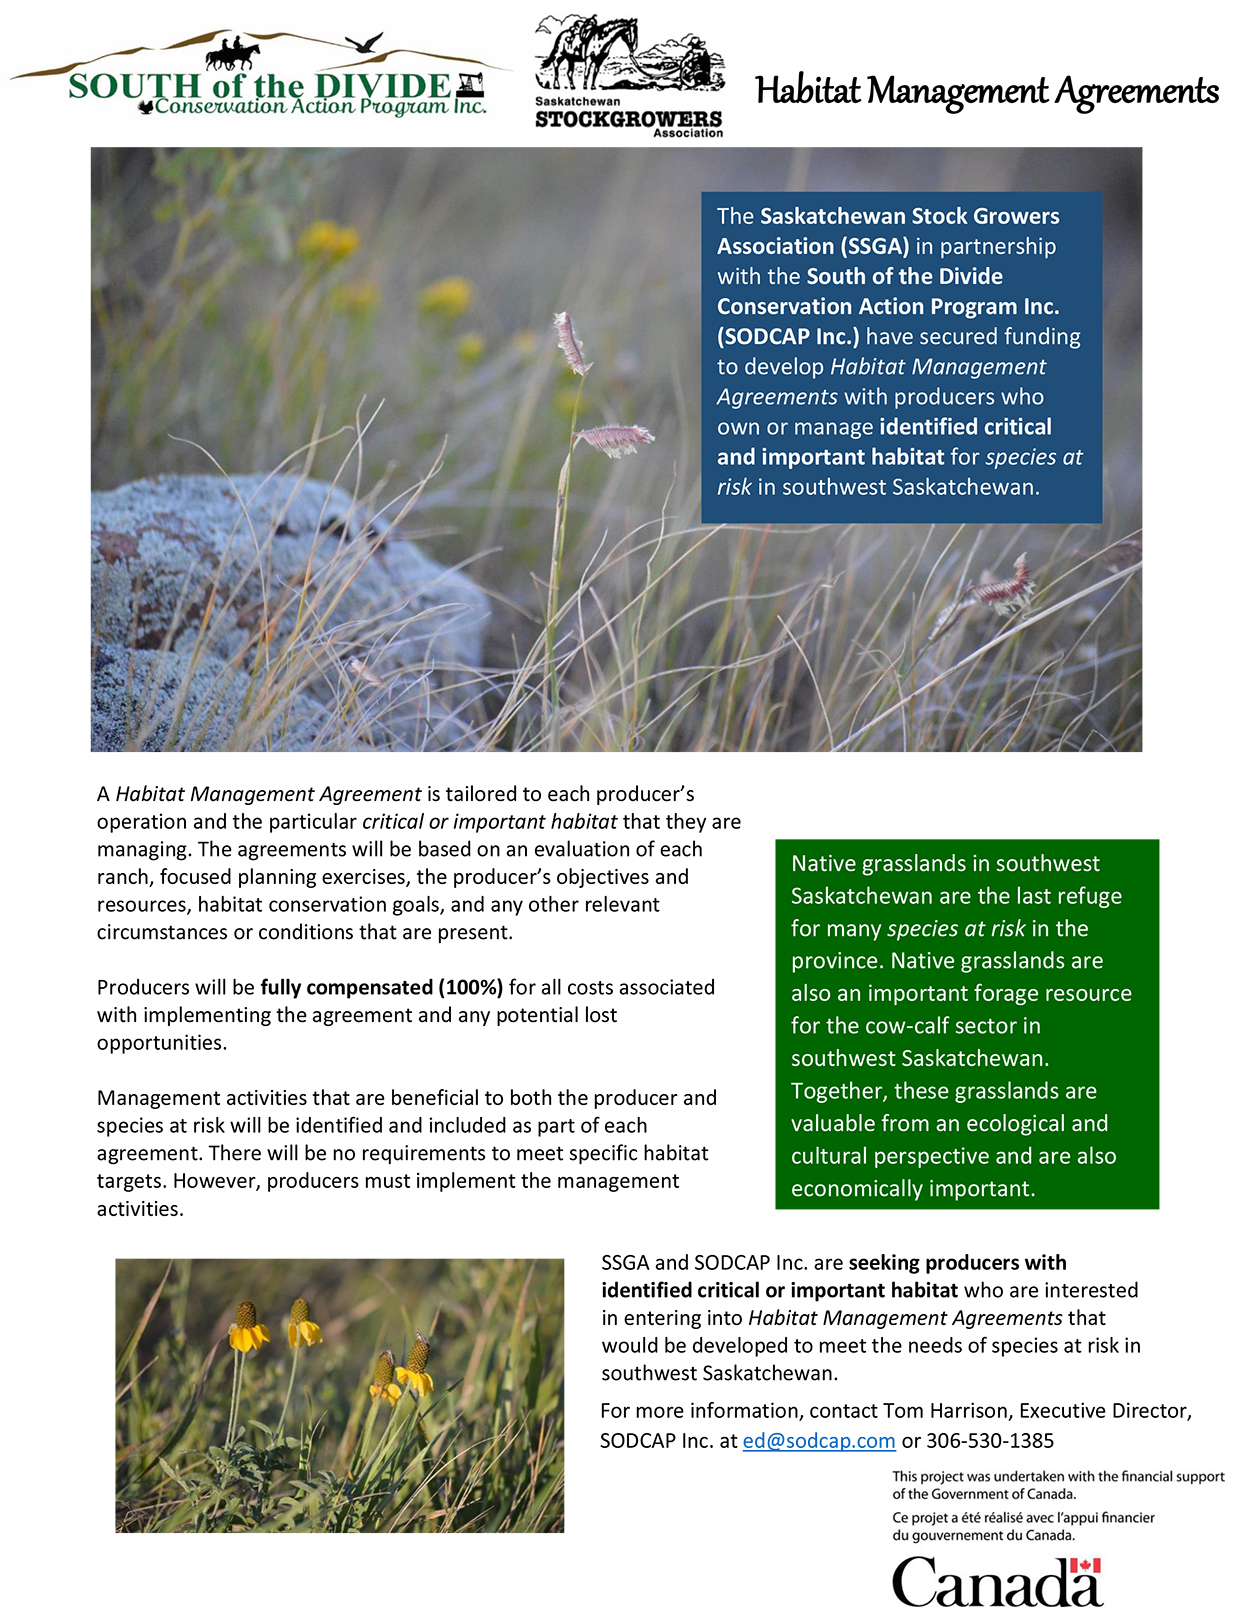 Habitat Management Agreement